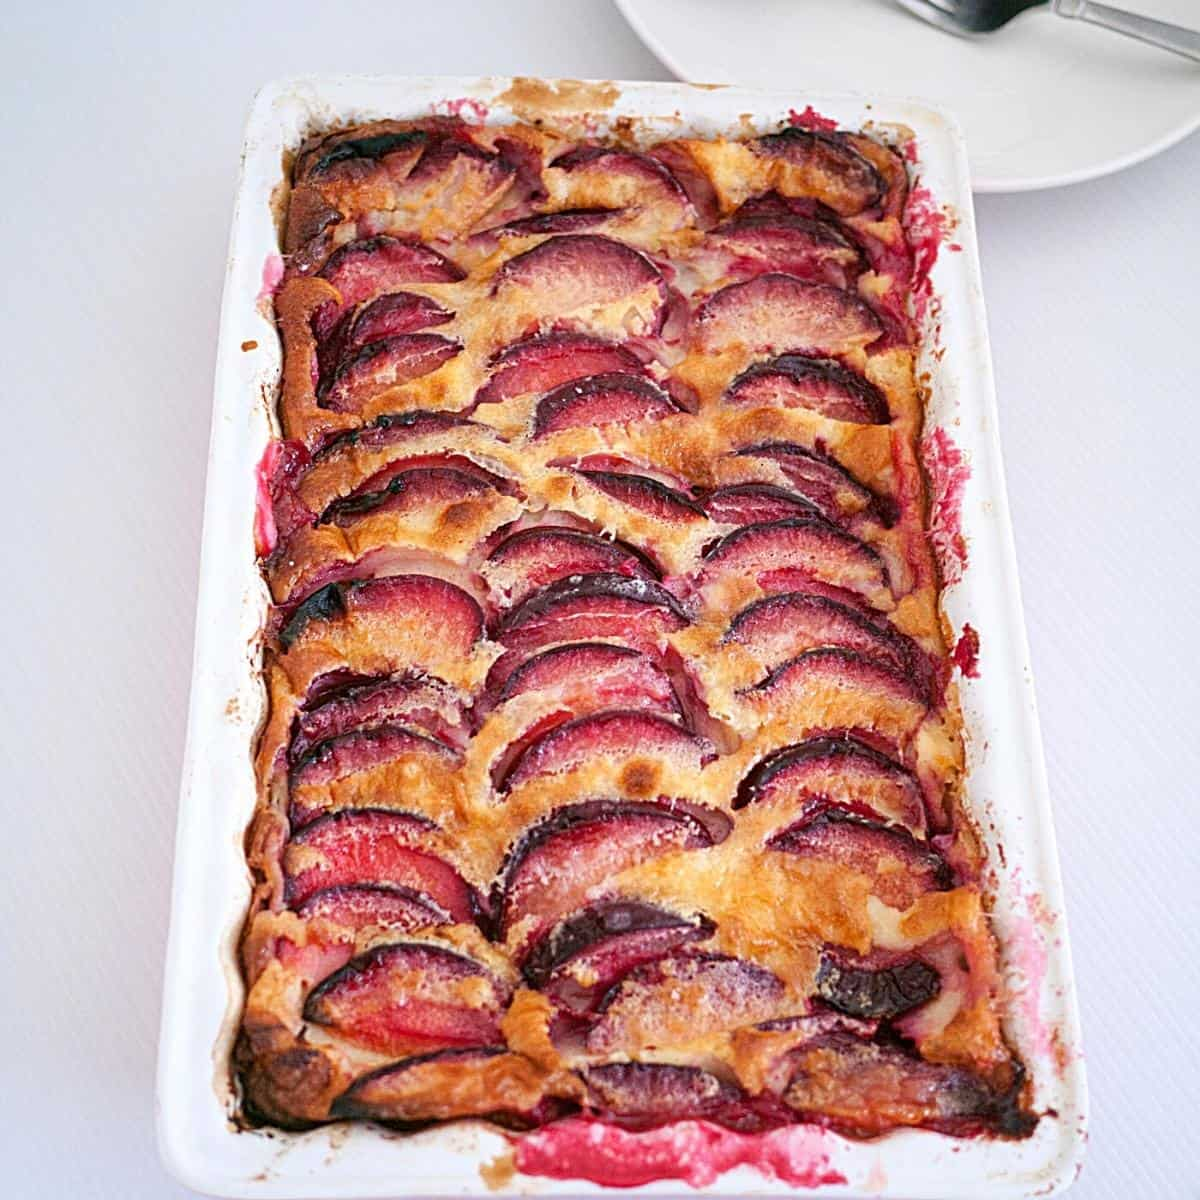 A baking dish with baked clafoutis with plums.